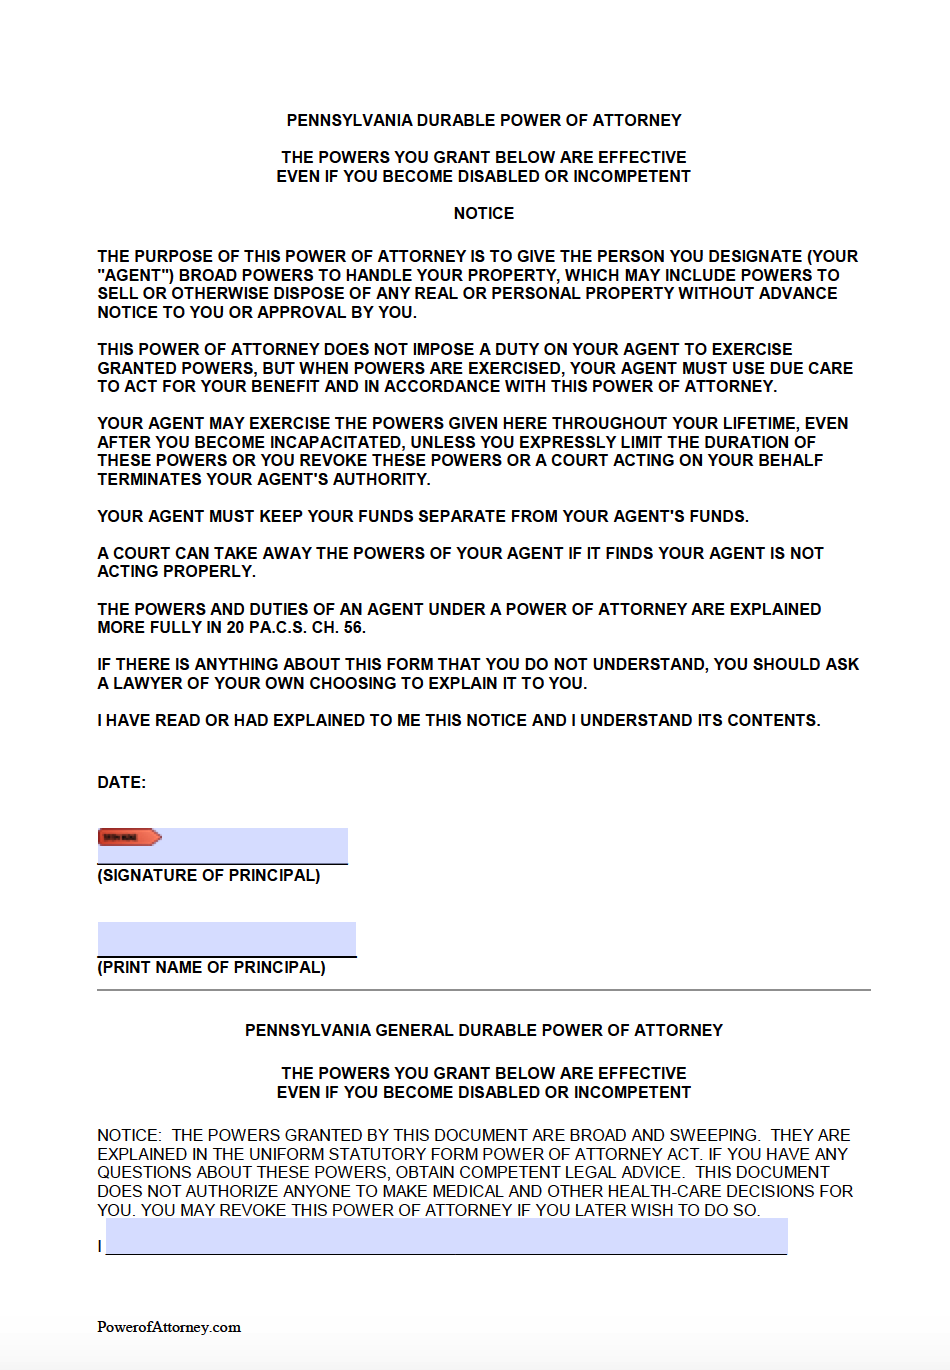 Free Durable Power of Attorney Pennsylvania Form – PDF & Word